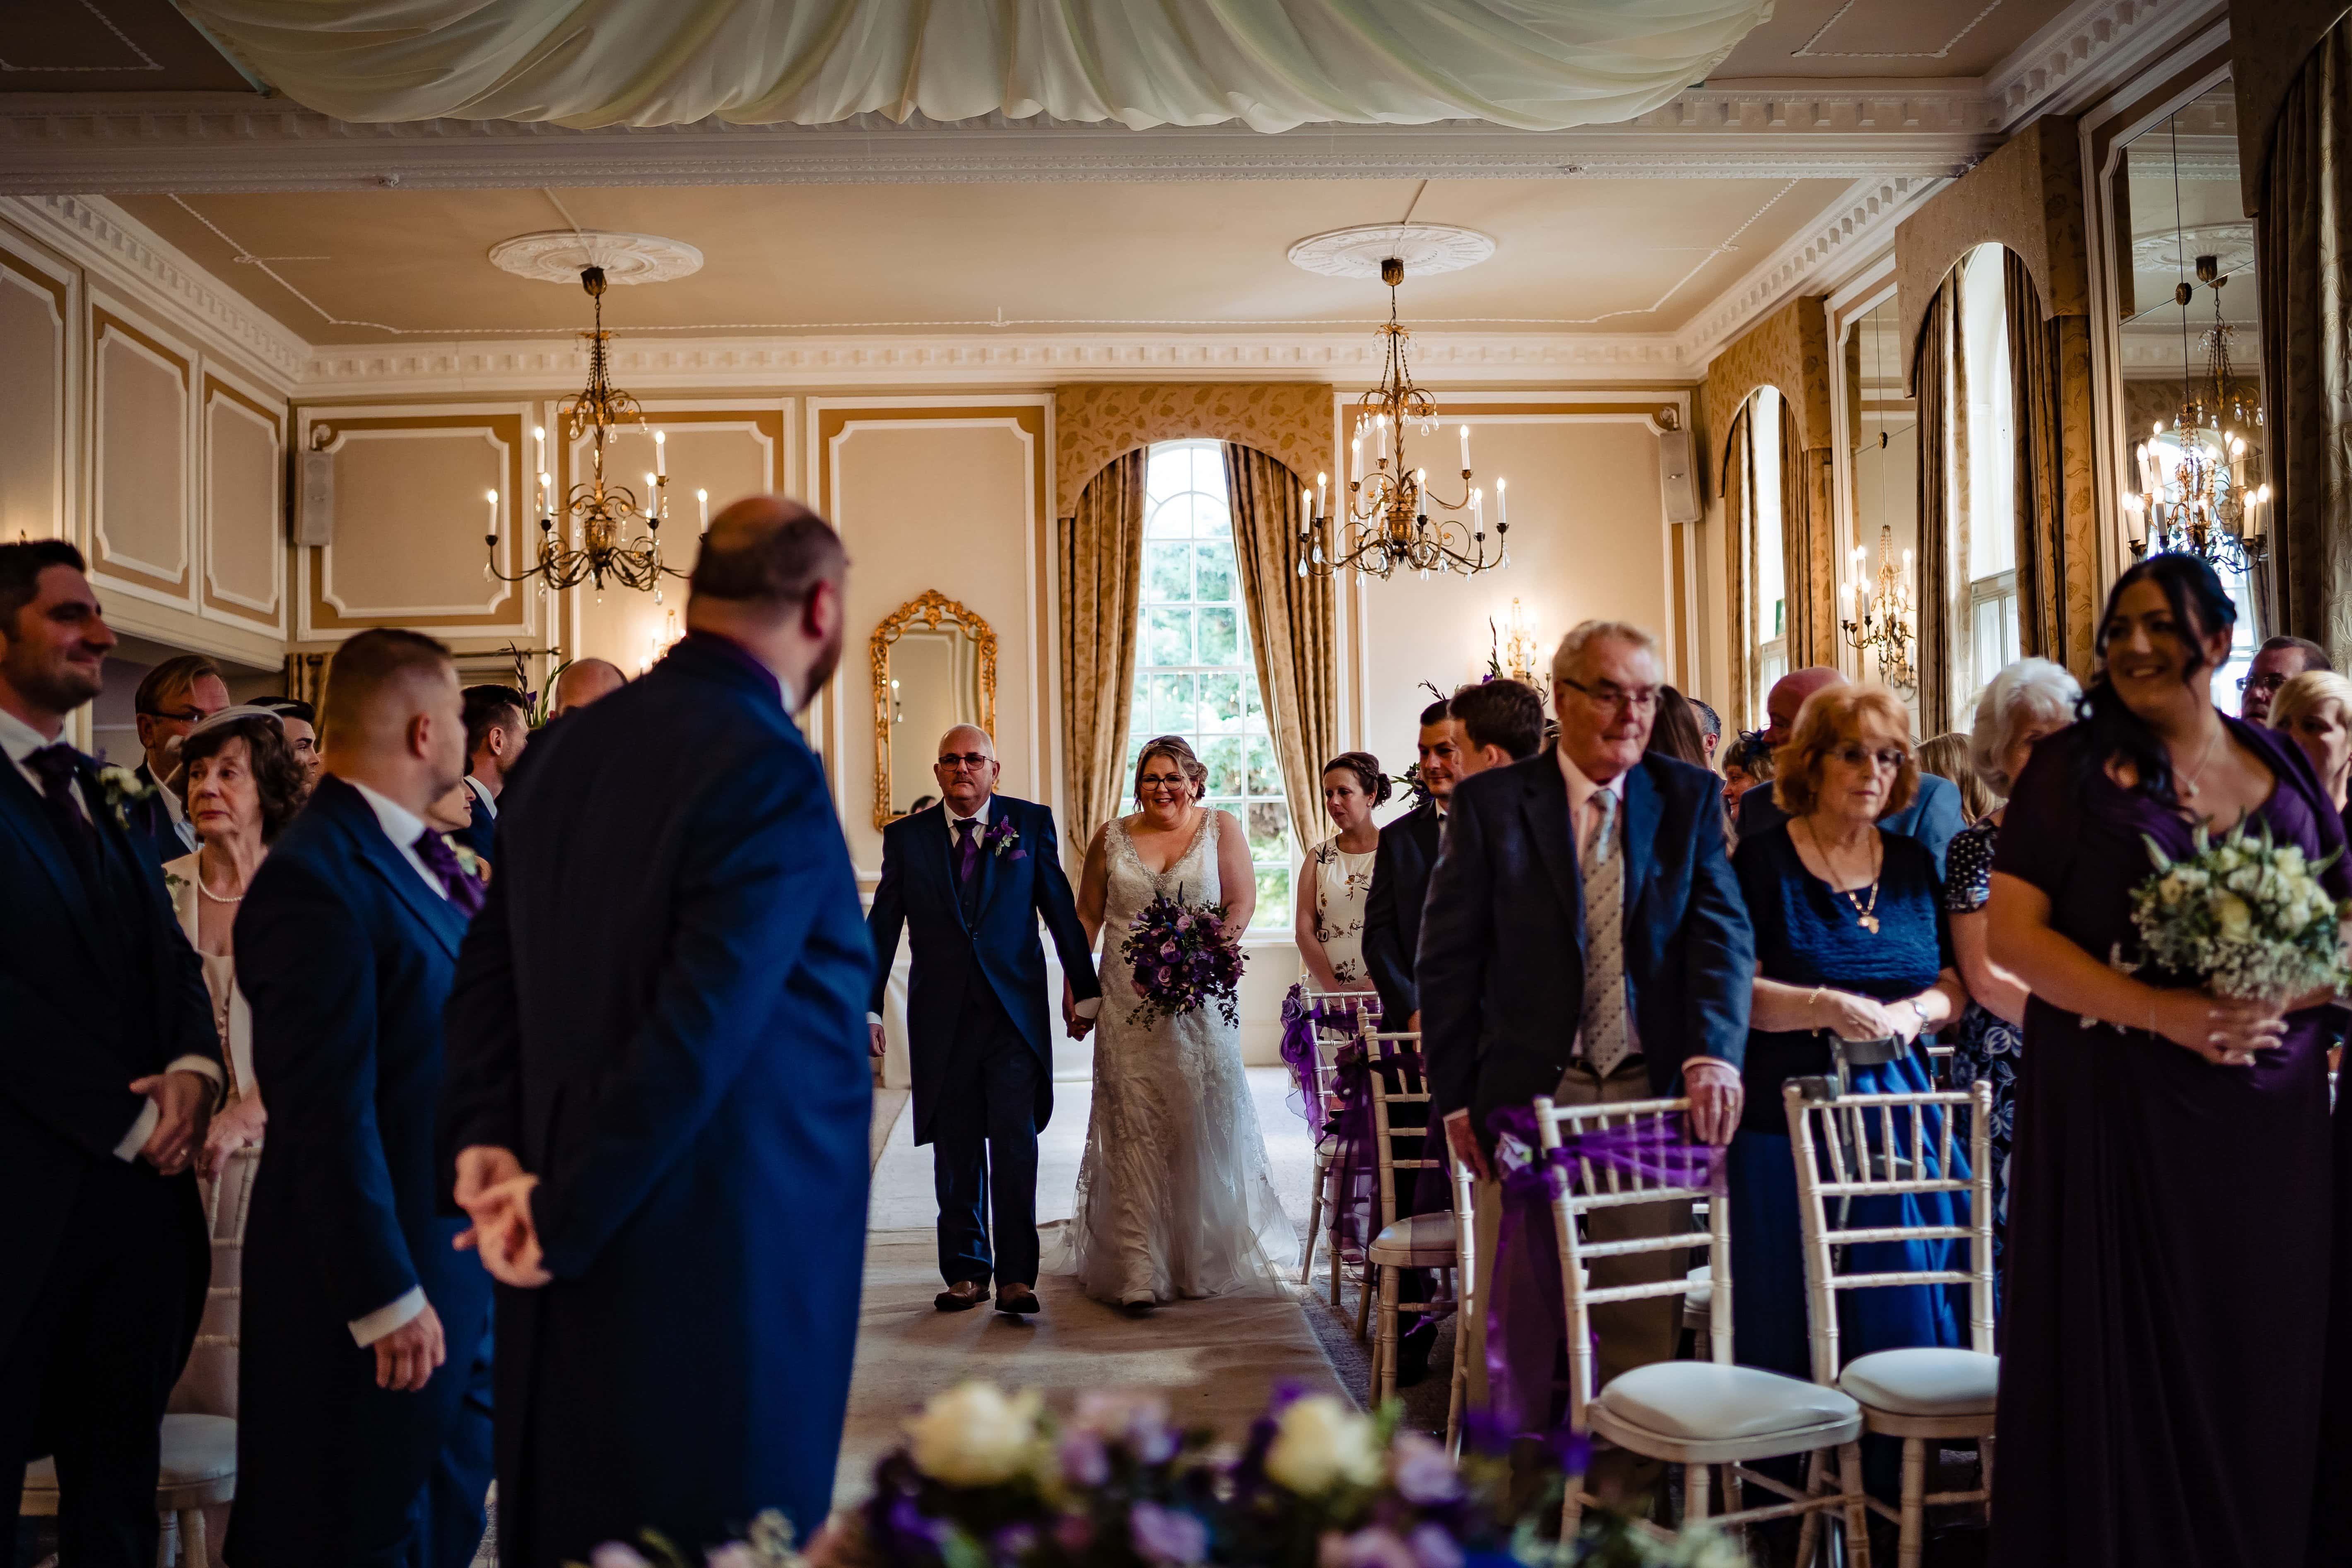 chesterfield wedding photographer, ringwood hall weddings, derbyshire wedding photographer, candid wedding photographer, documentary pictures, cheap wedding photographer, wedding photographer near me